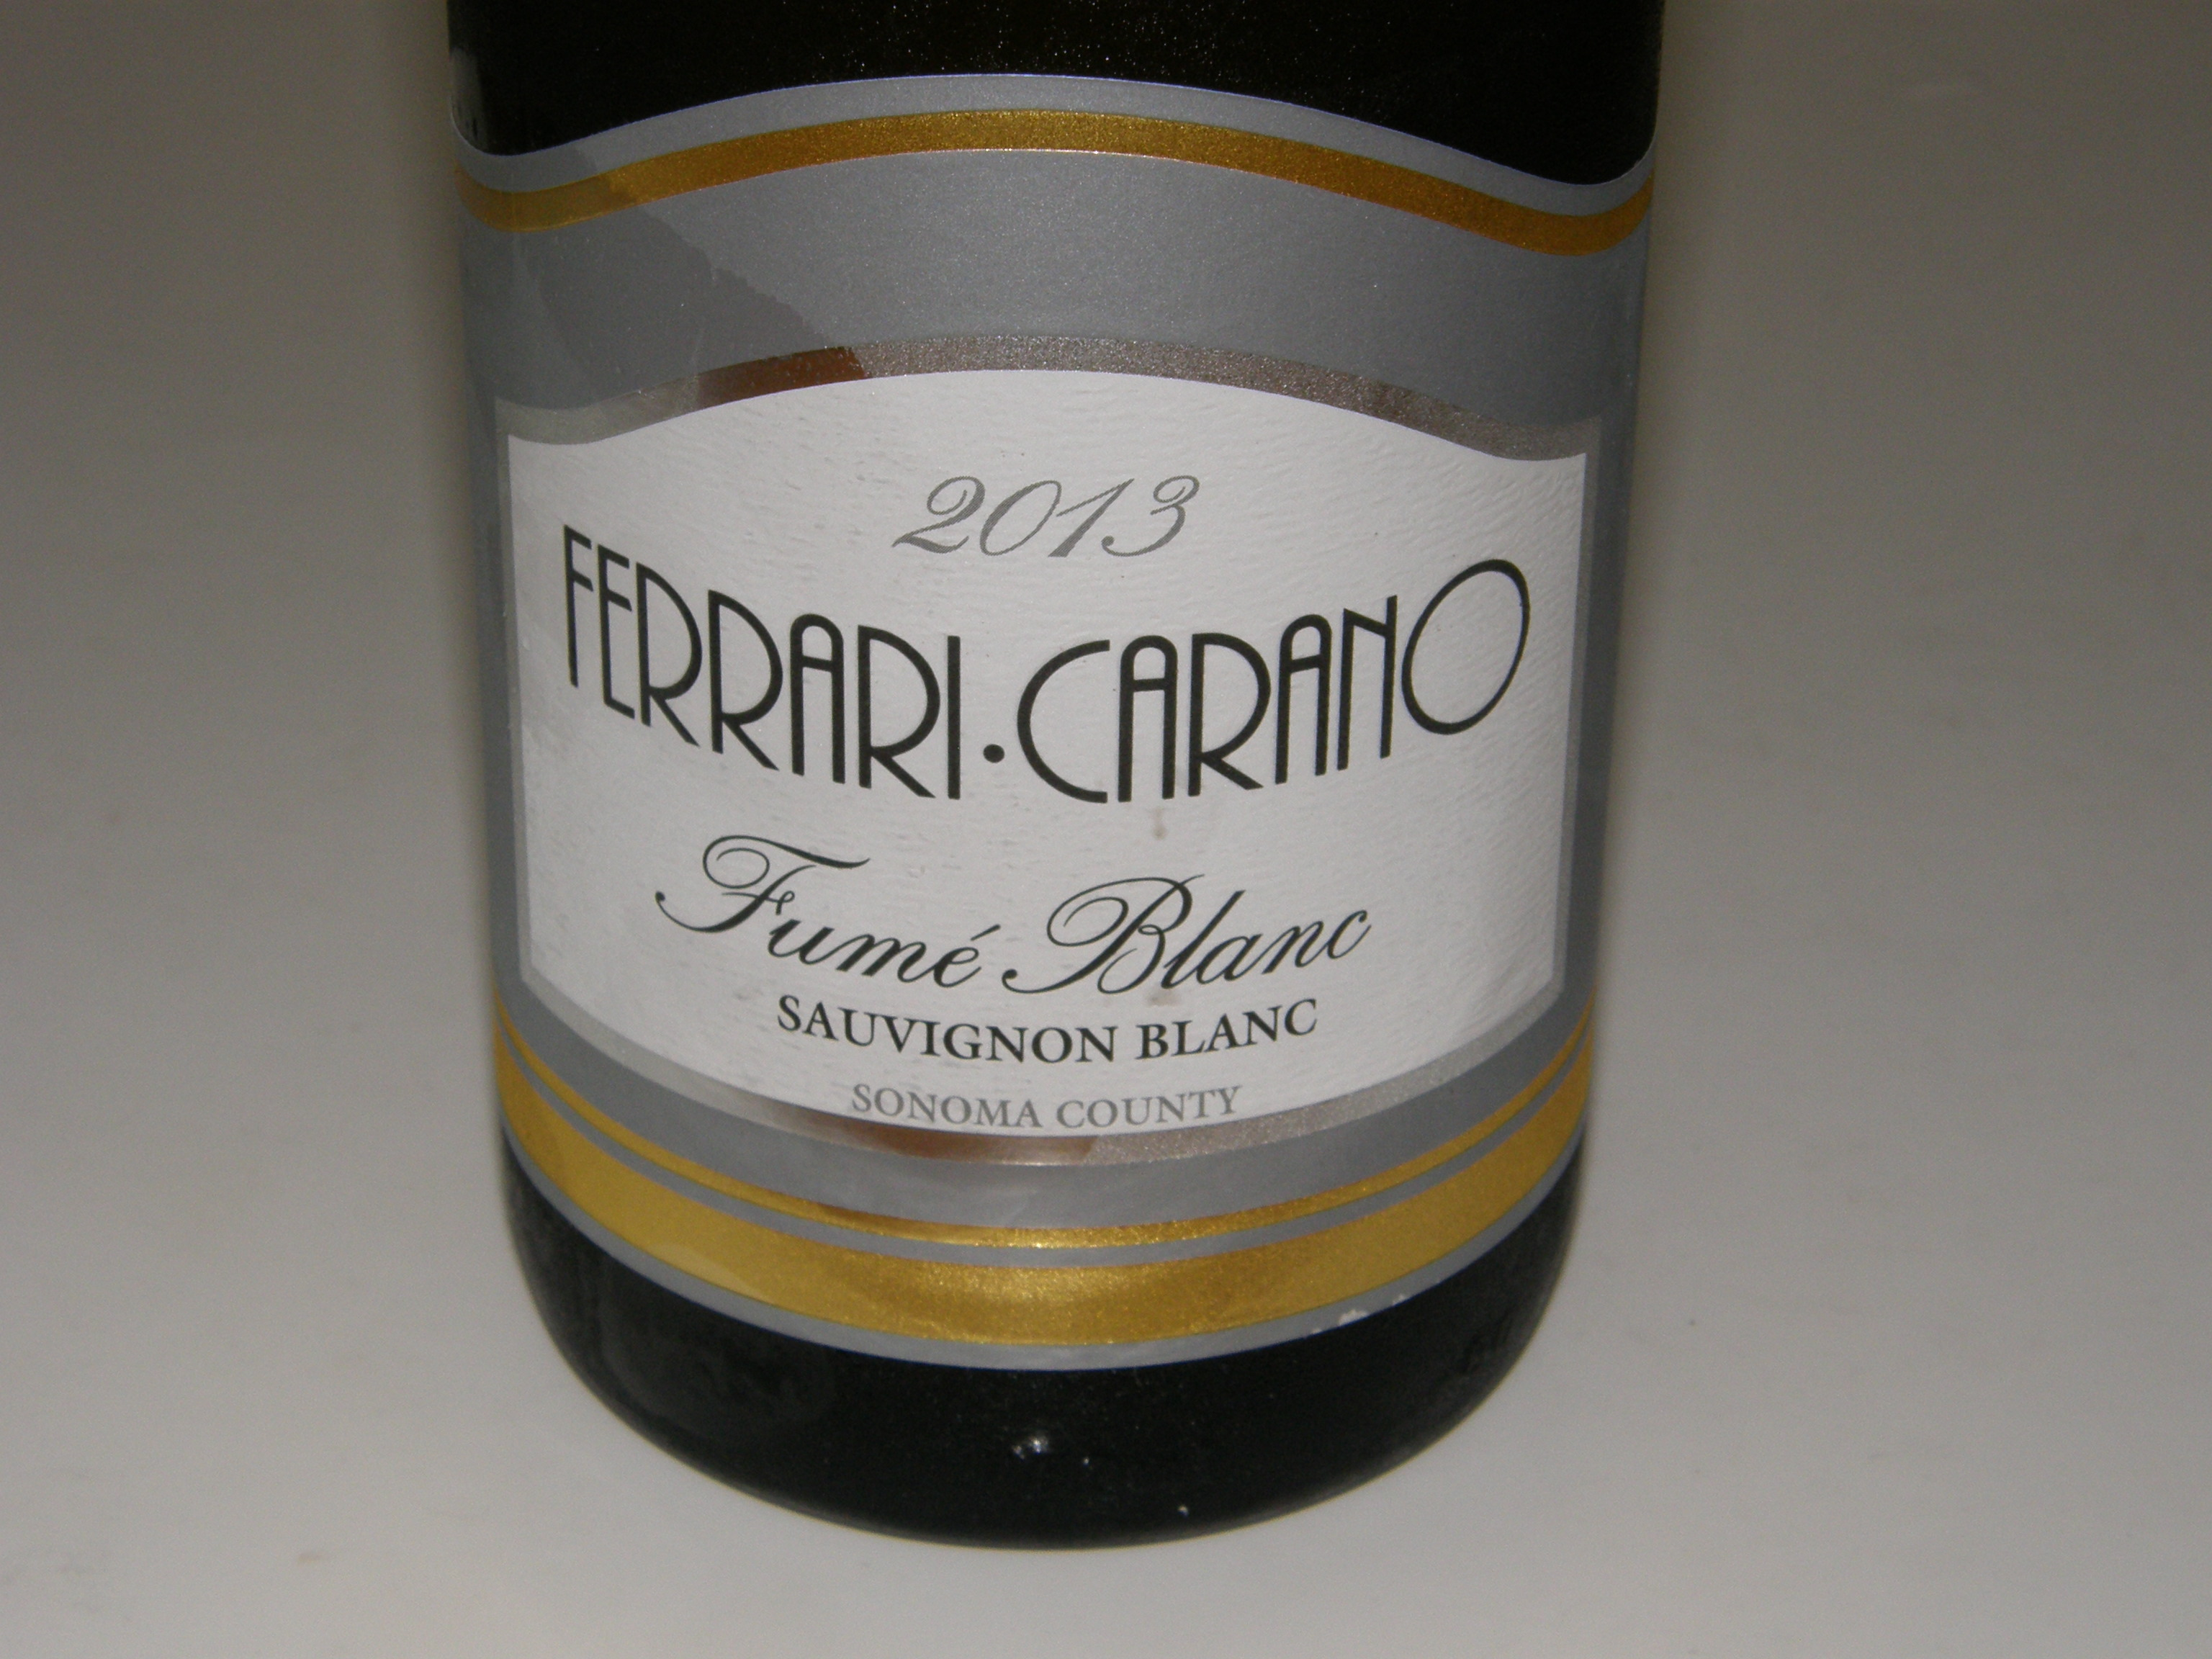 Must Try Wine Of The Week: 2013 Ferrari Carano Fumé Blanc Sonoma County  Sauvignon Blanc